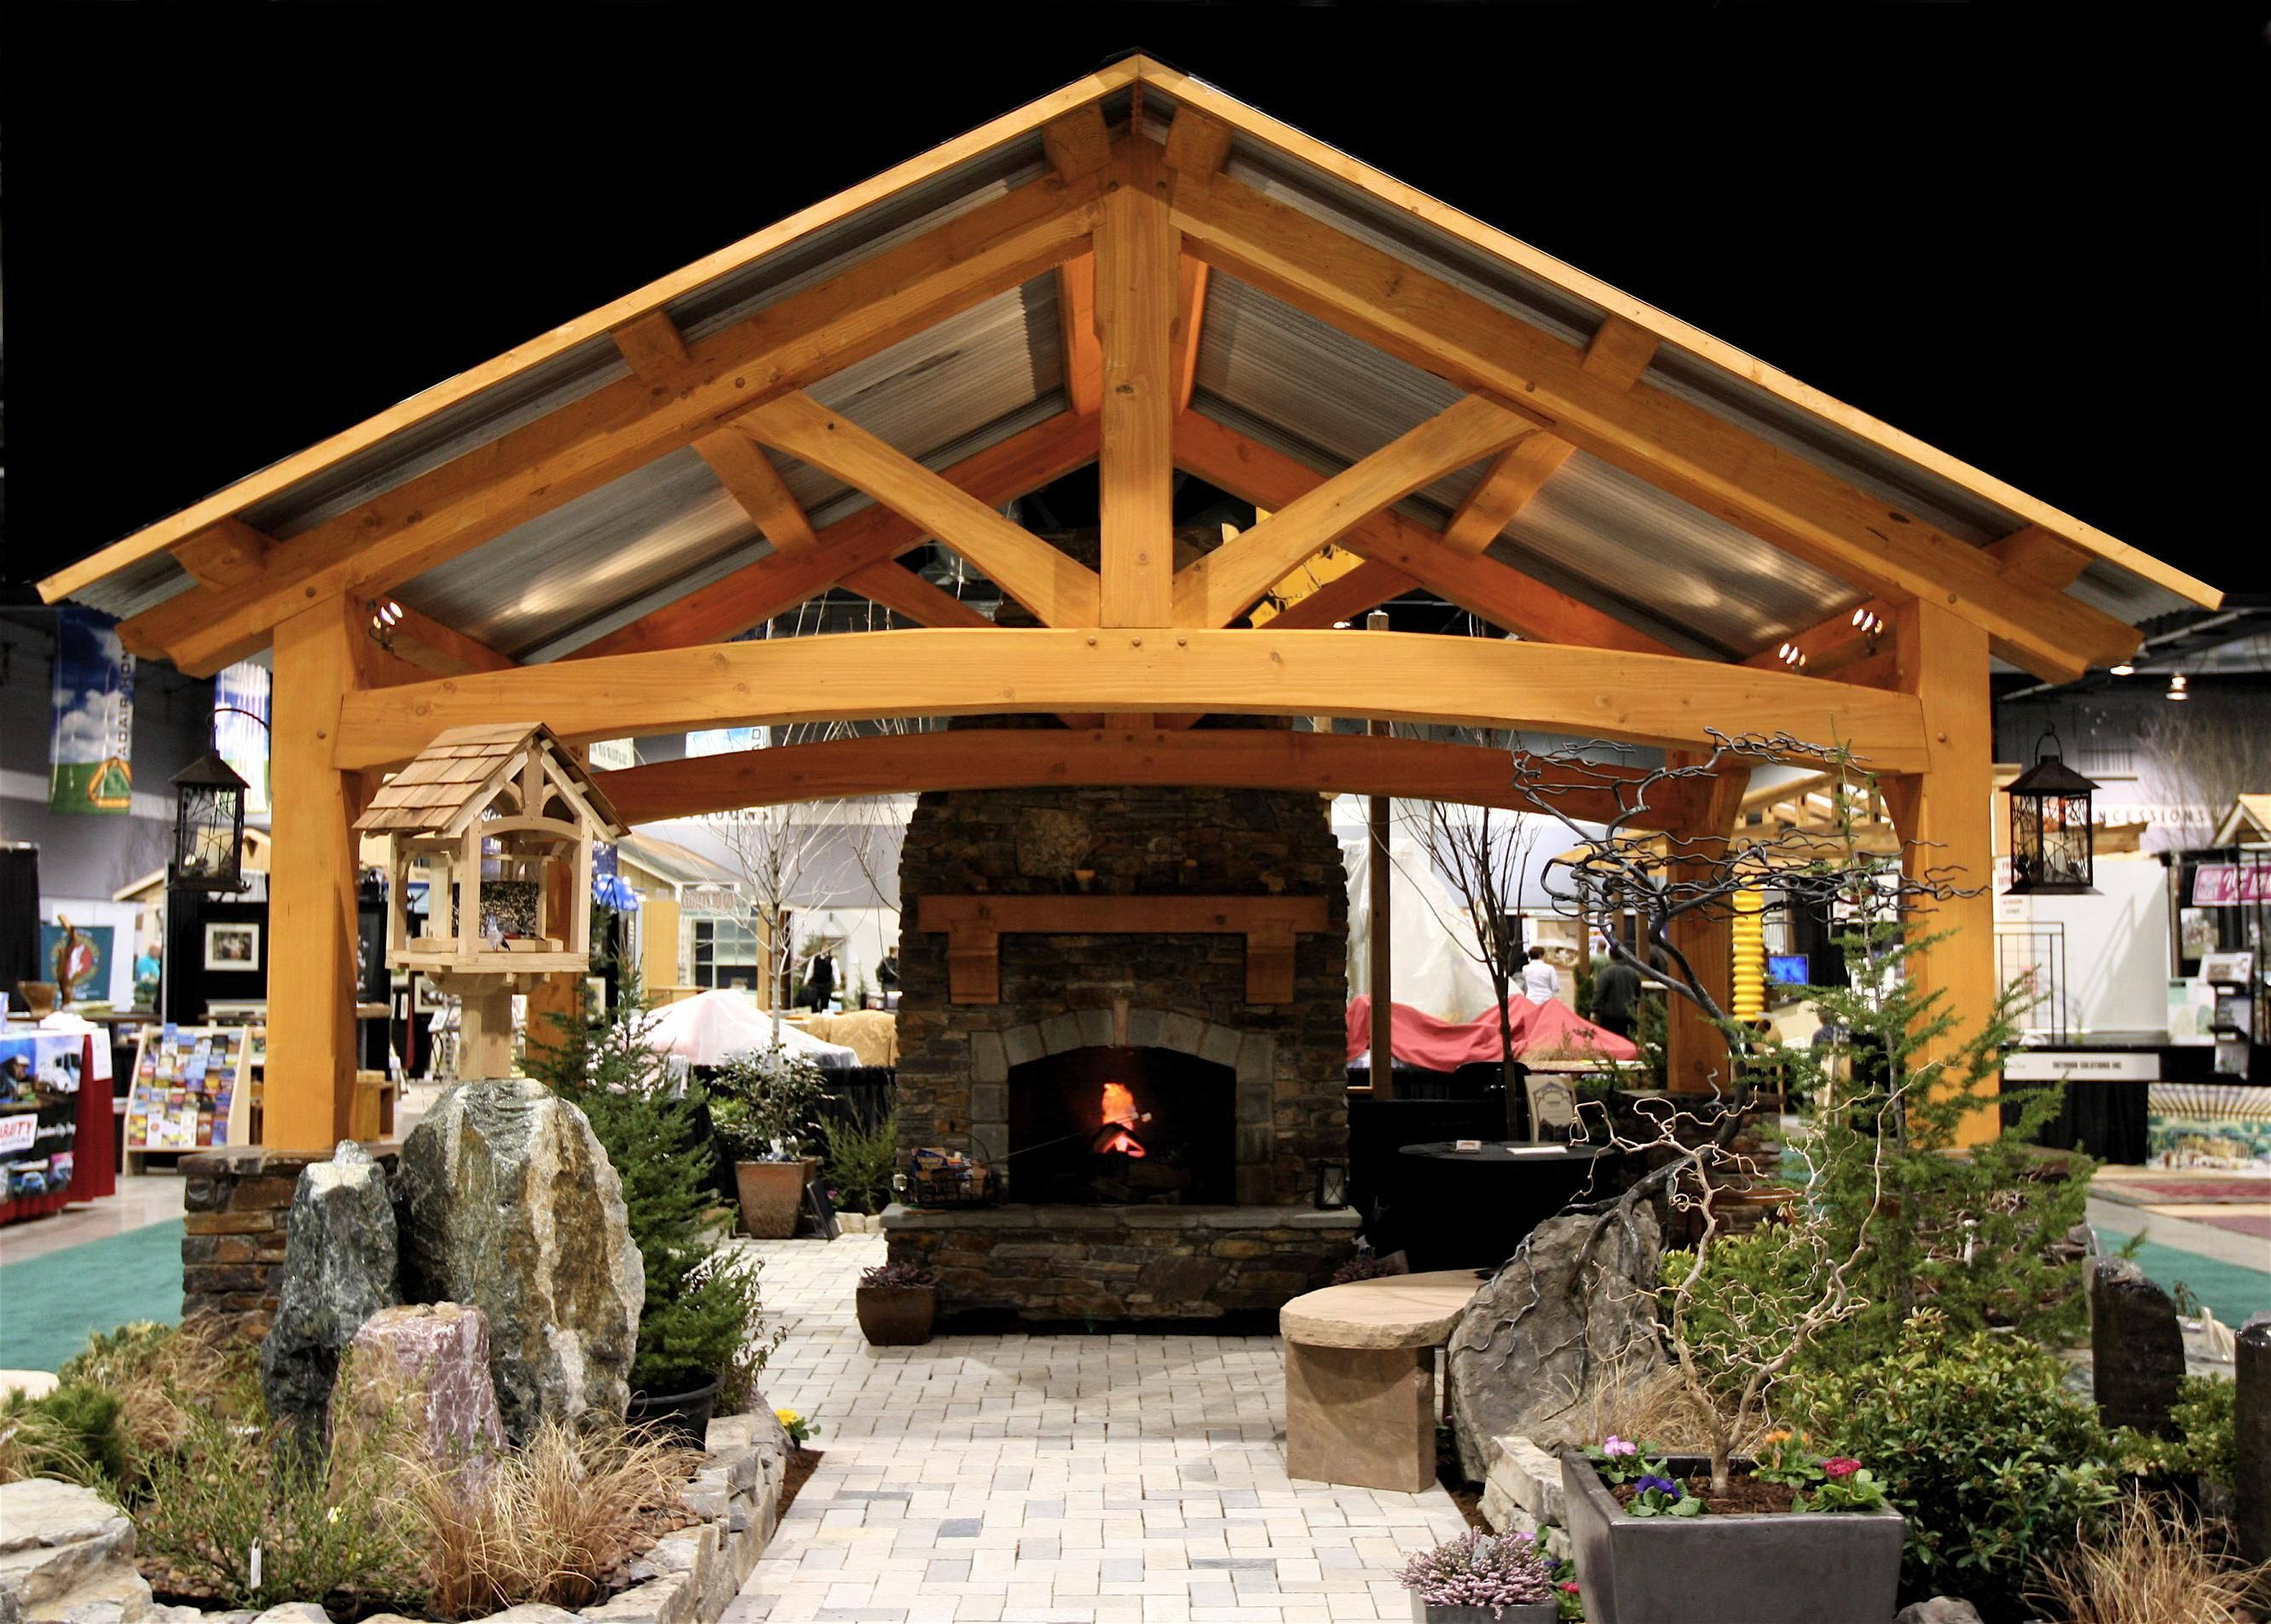 Backyard Room Kits : Outdoor Living Room with a fireplace  Timber Frame Pavilion Kits  P